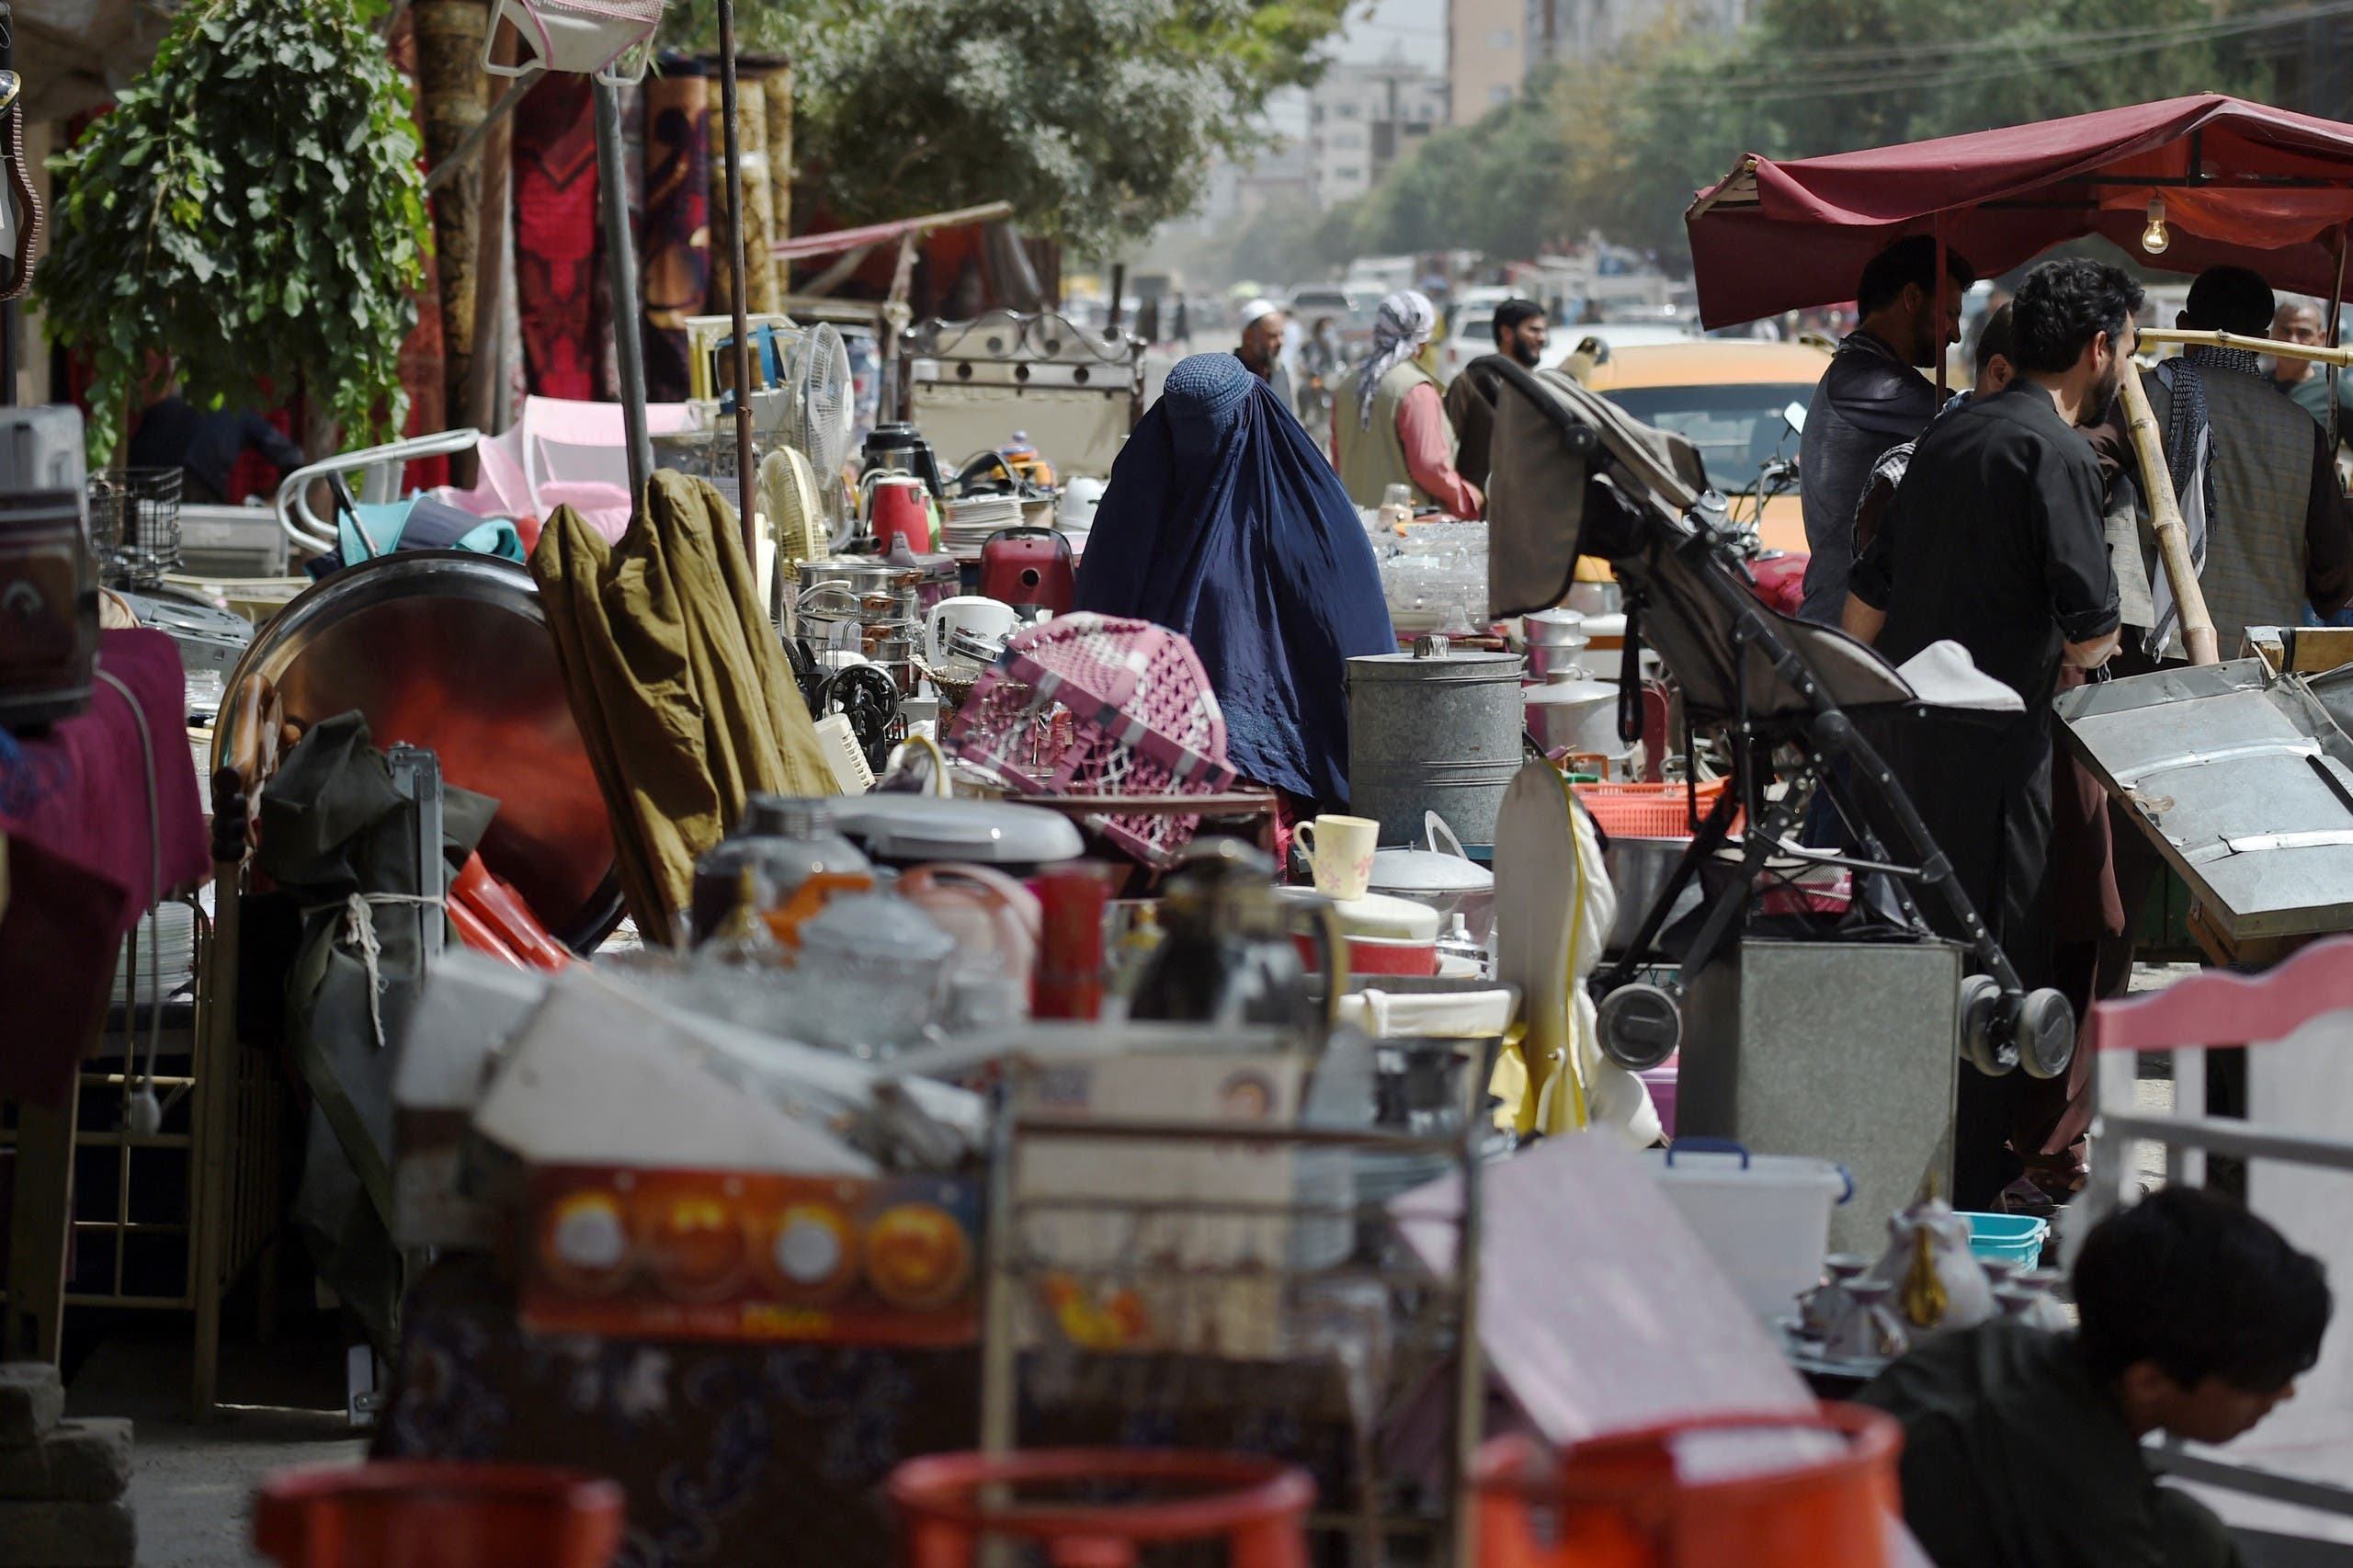 This photo taken on September 12, 2021 shows a woman looking at secondhand household items for sale at a market in the northwest neighbourhood of Khair Khana in Kabul. (AFP)